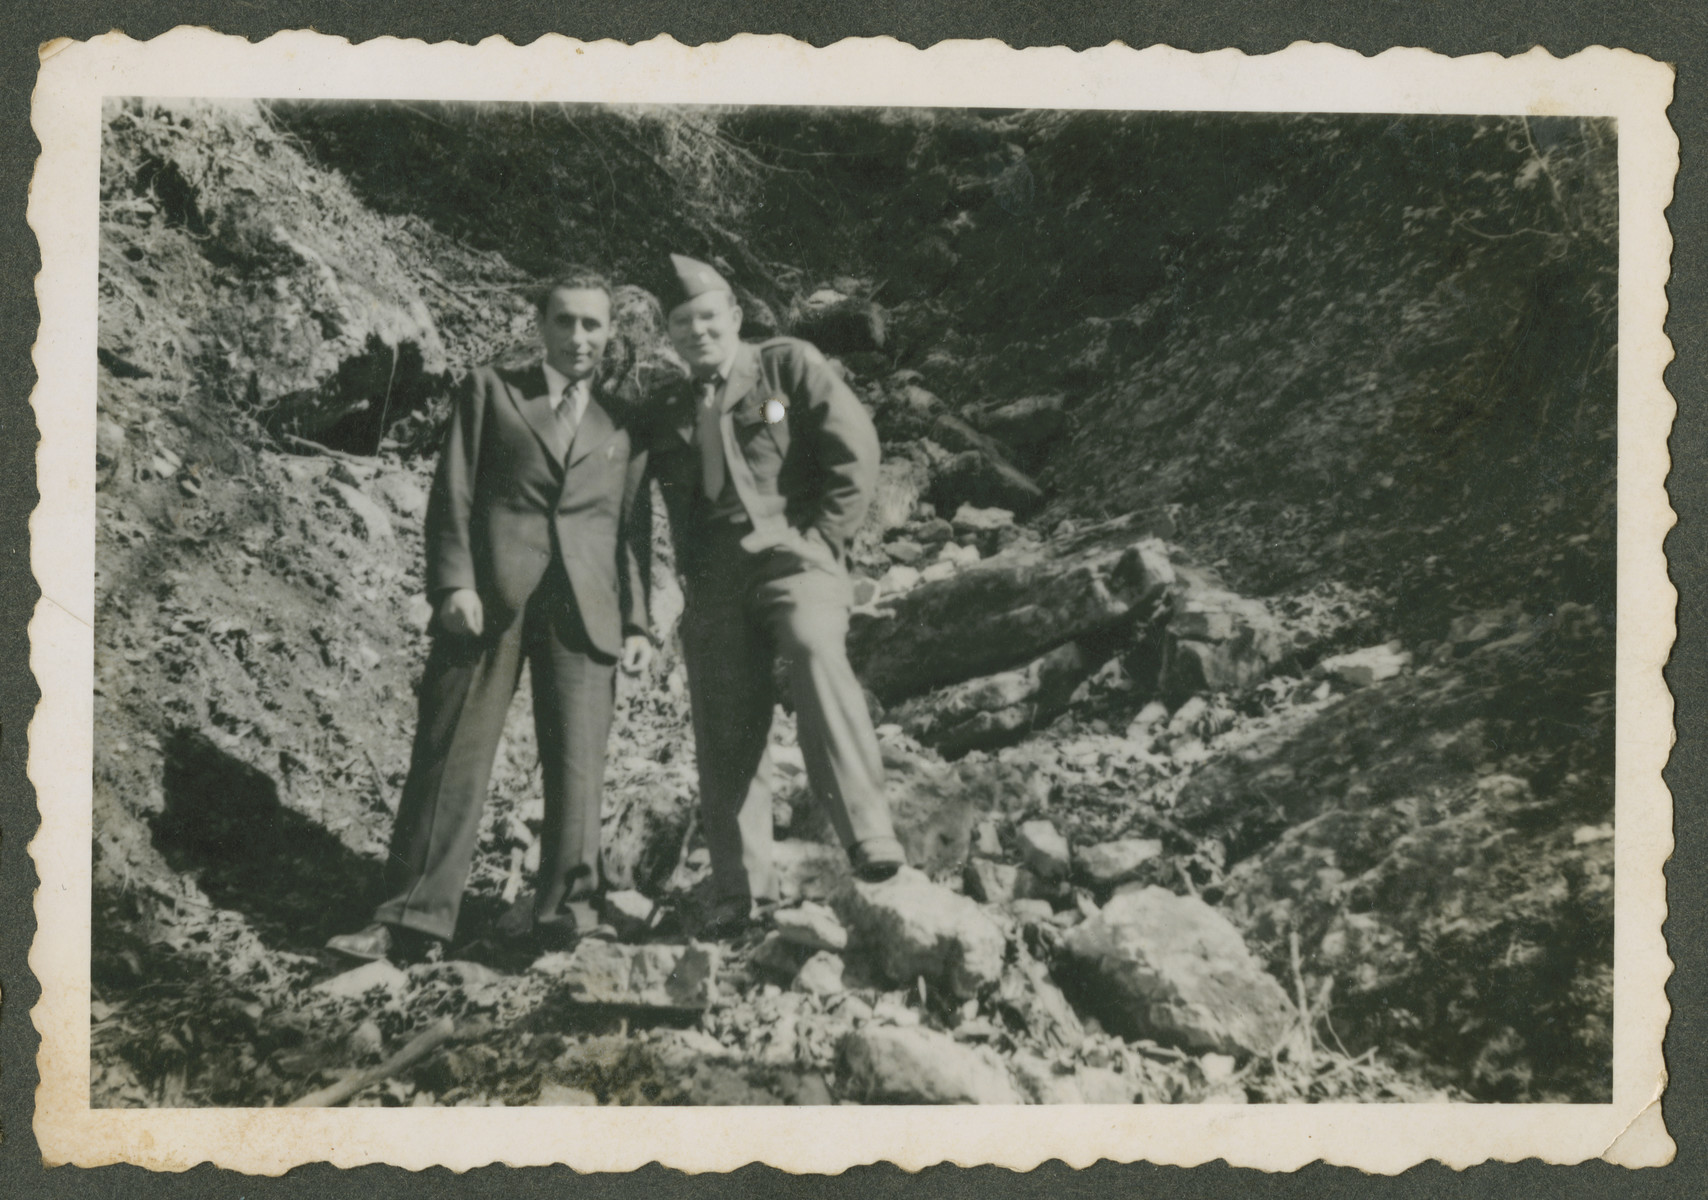 Herman Kutun stands with a a Jewish DP (probably a survivor from Dachau) who he had befriended.